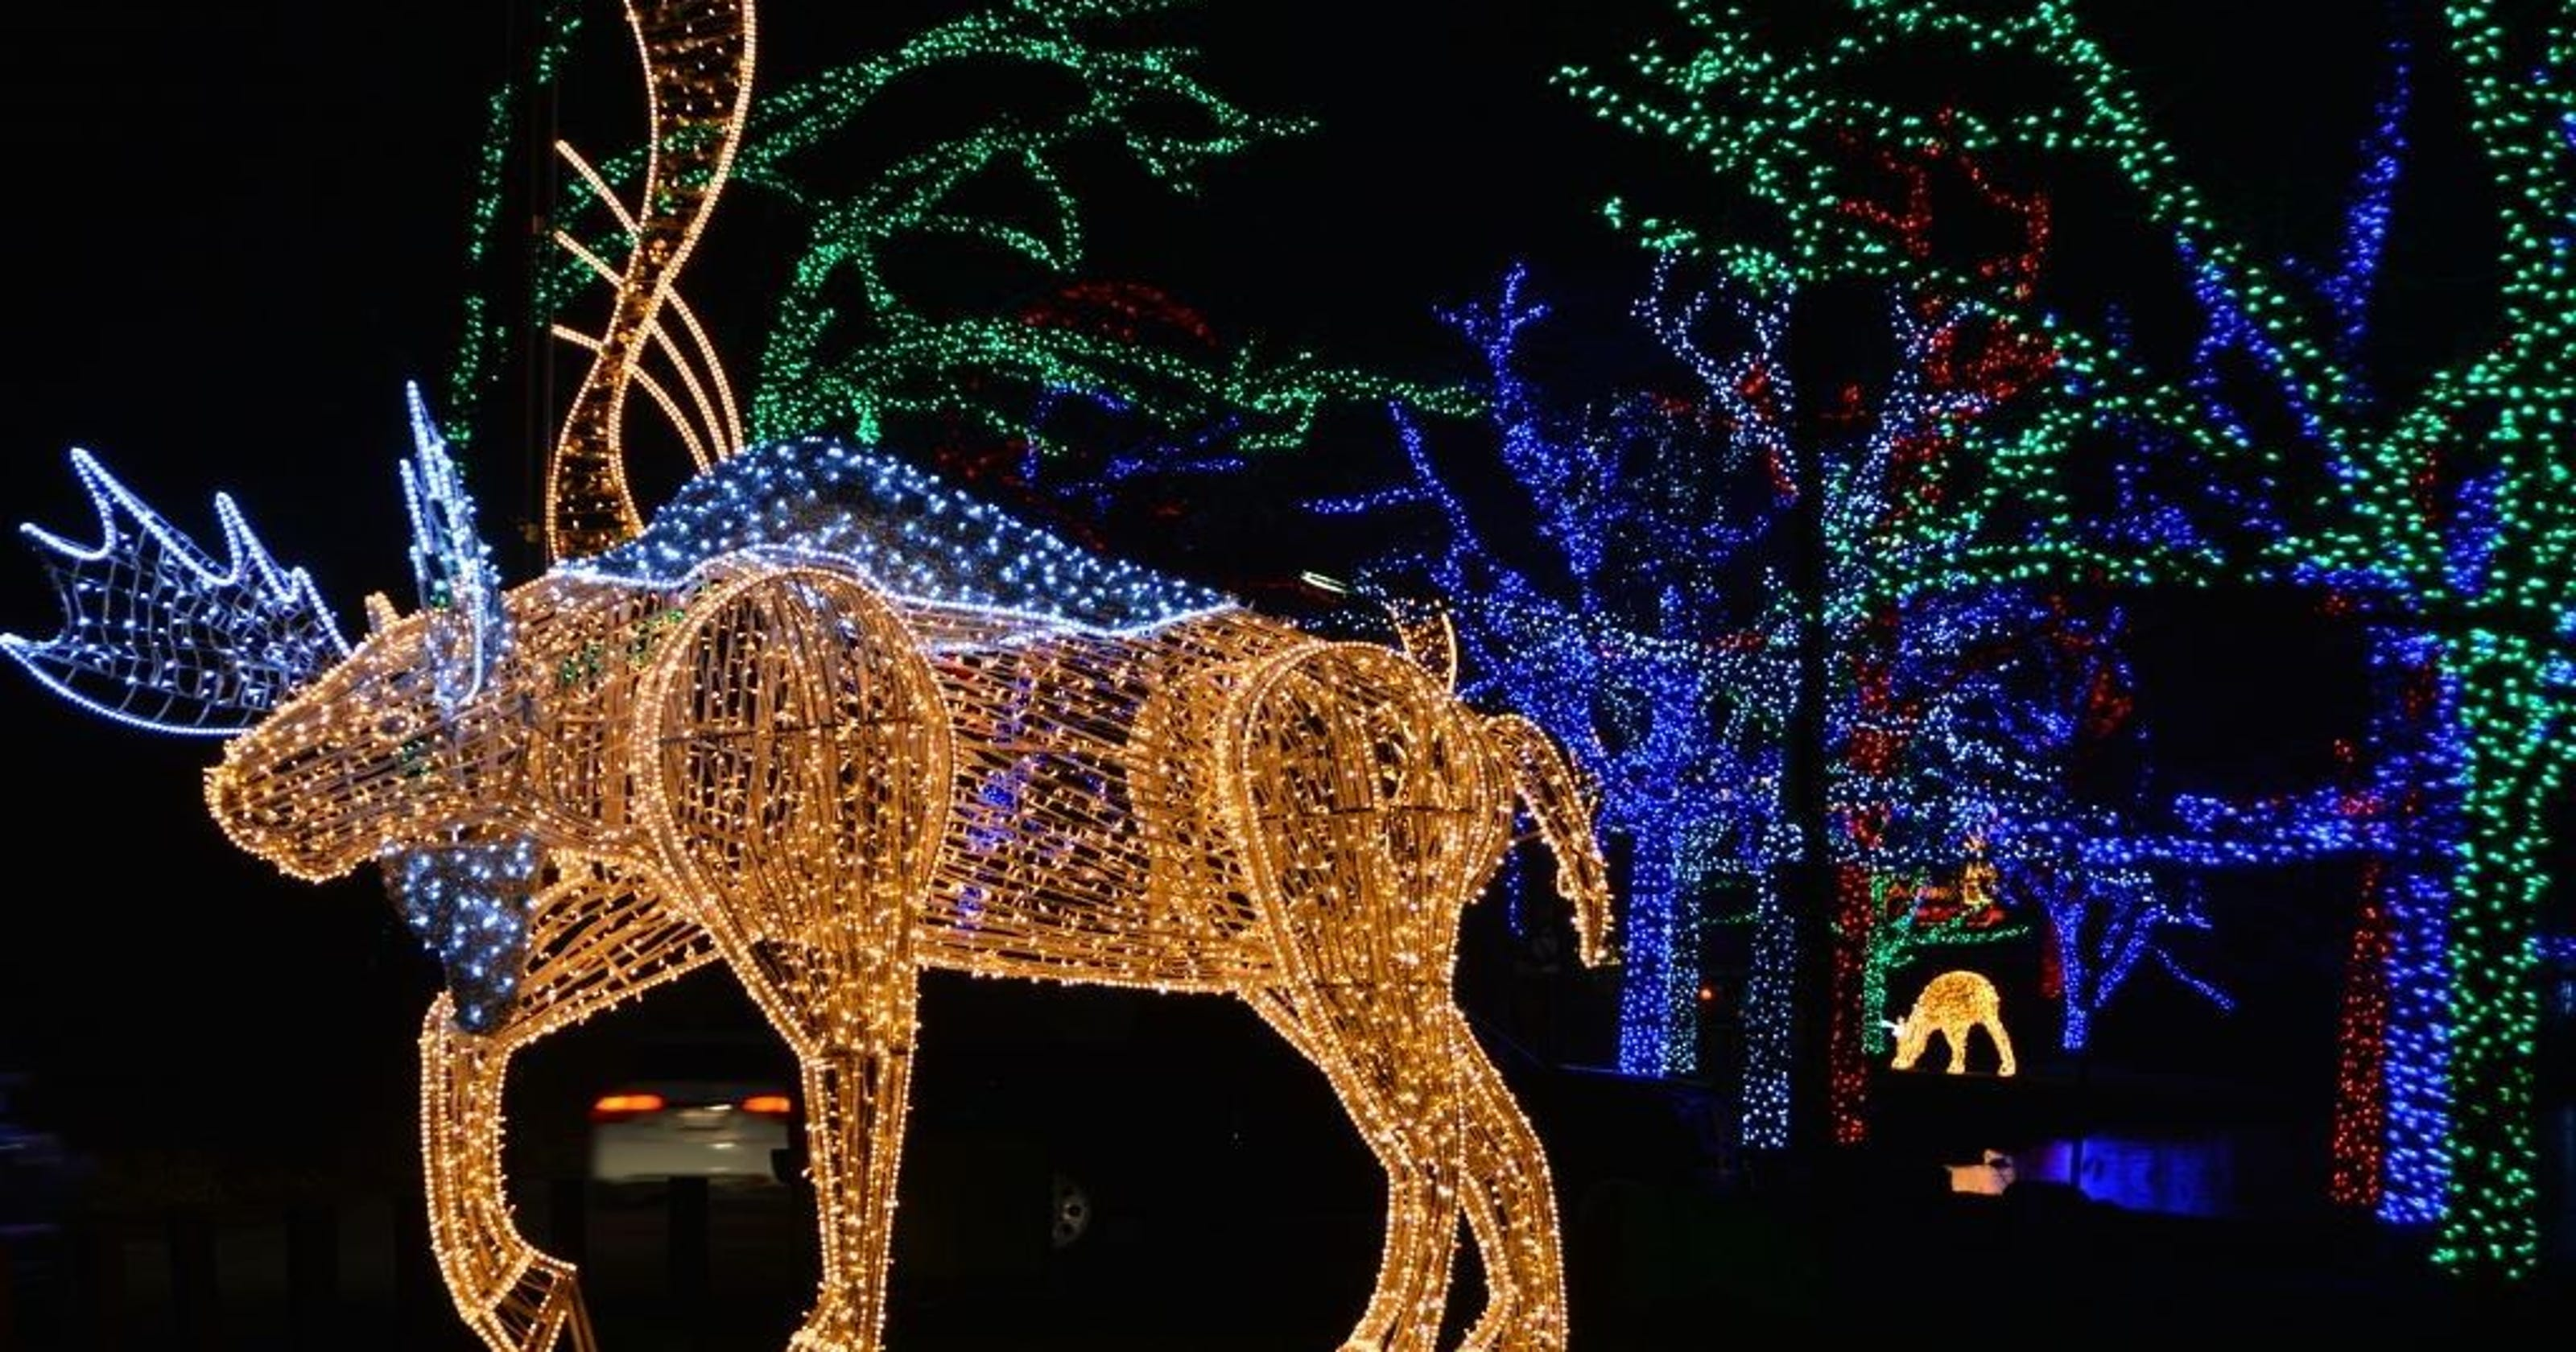 Christmas events, attractions abound in N.Y., Pa.